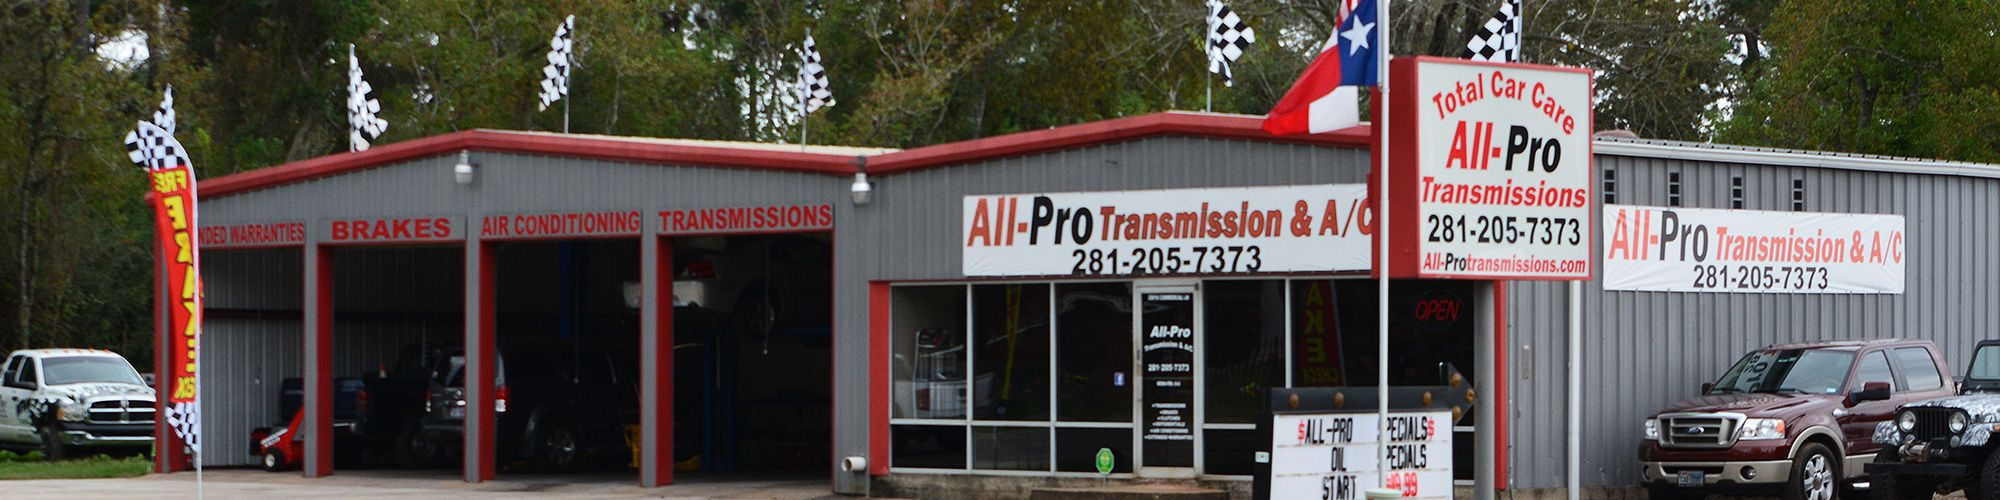 All-Pro Transmission Repair - Spring Transmission Repair - Tomball Transmission Repair